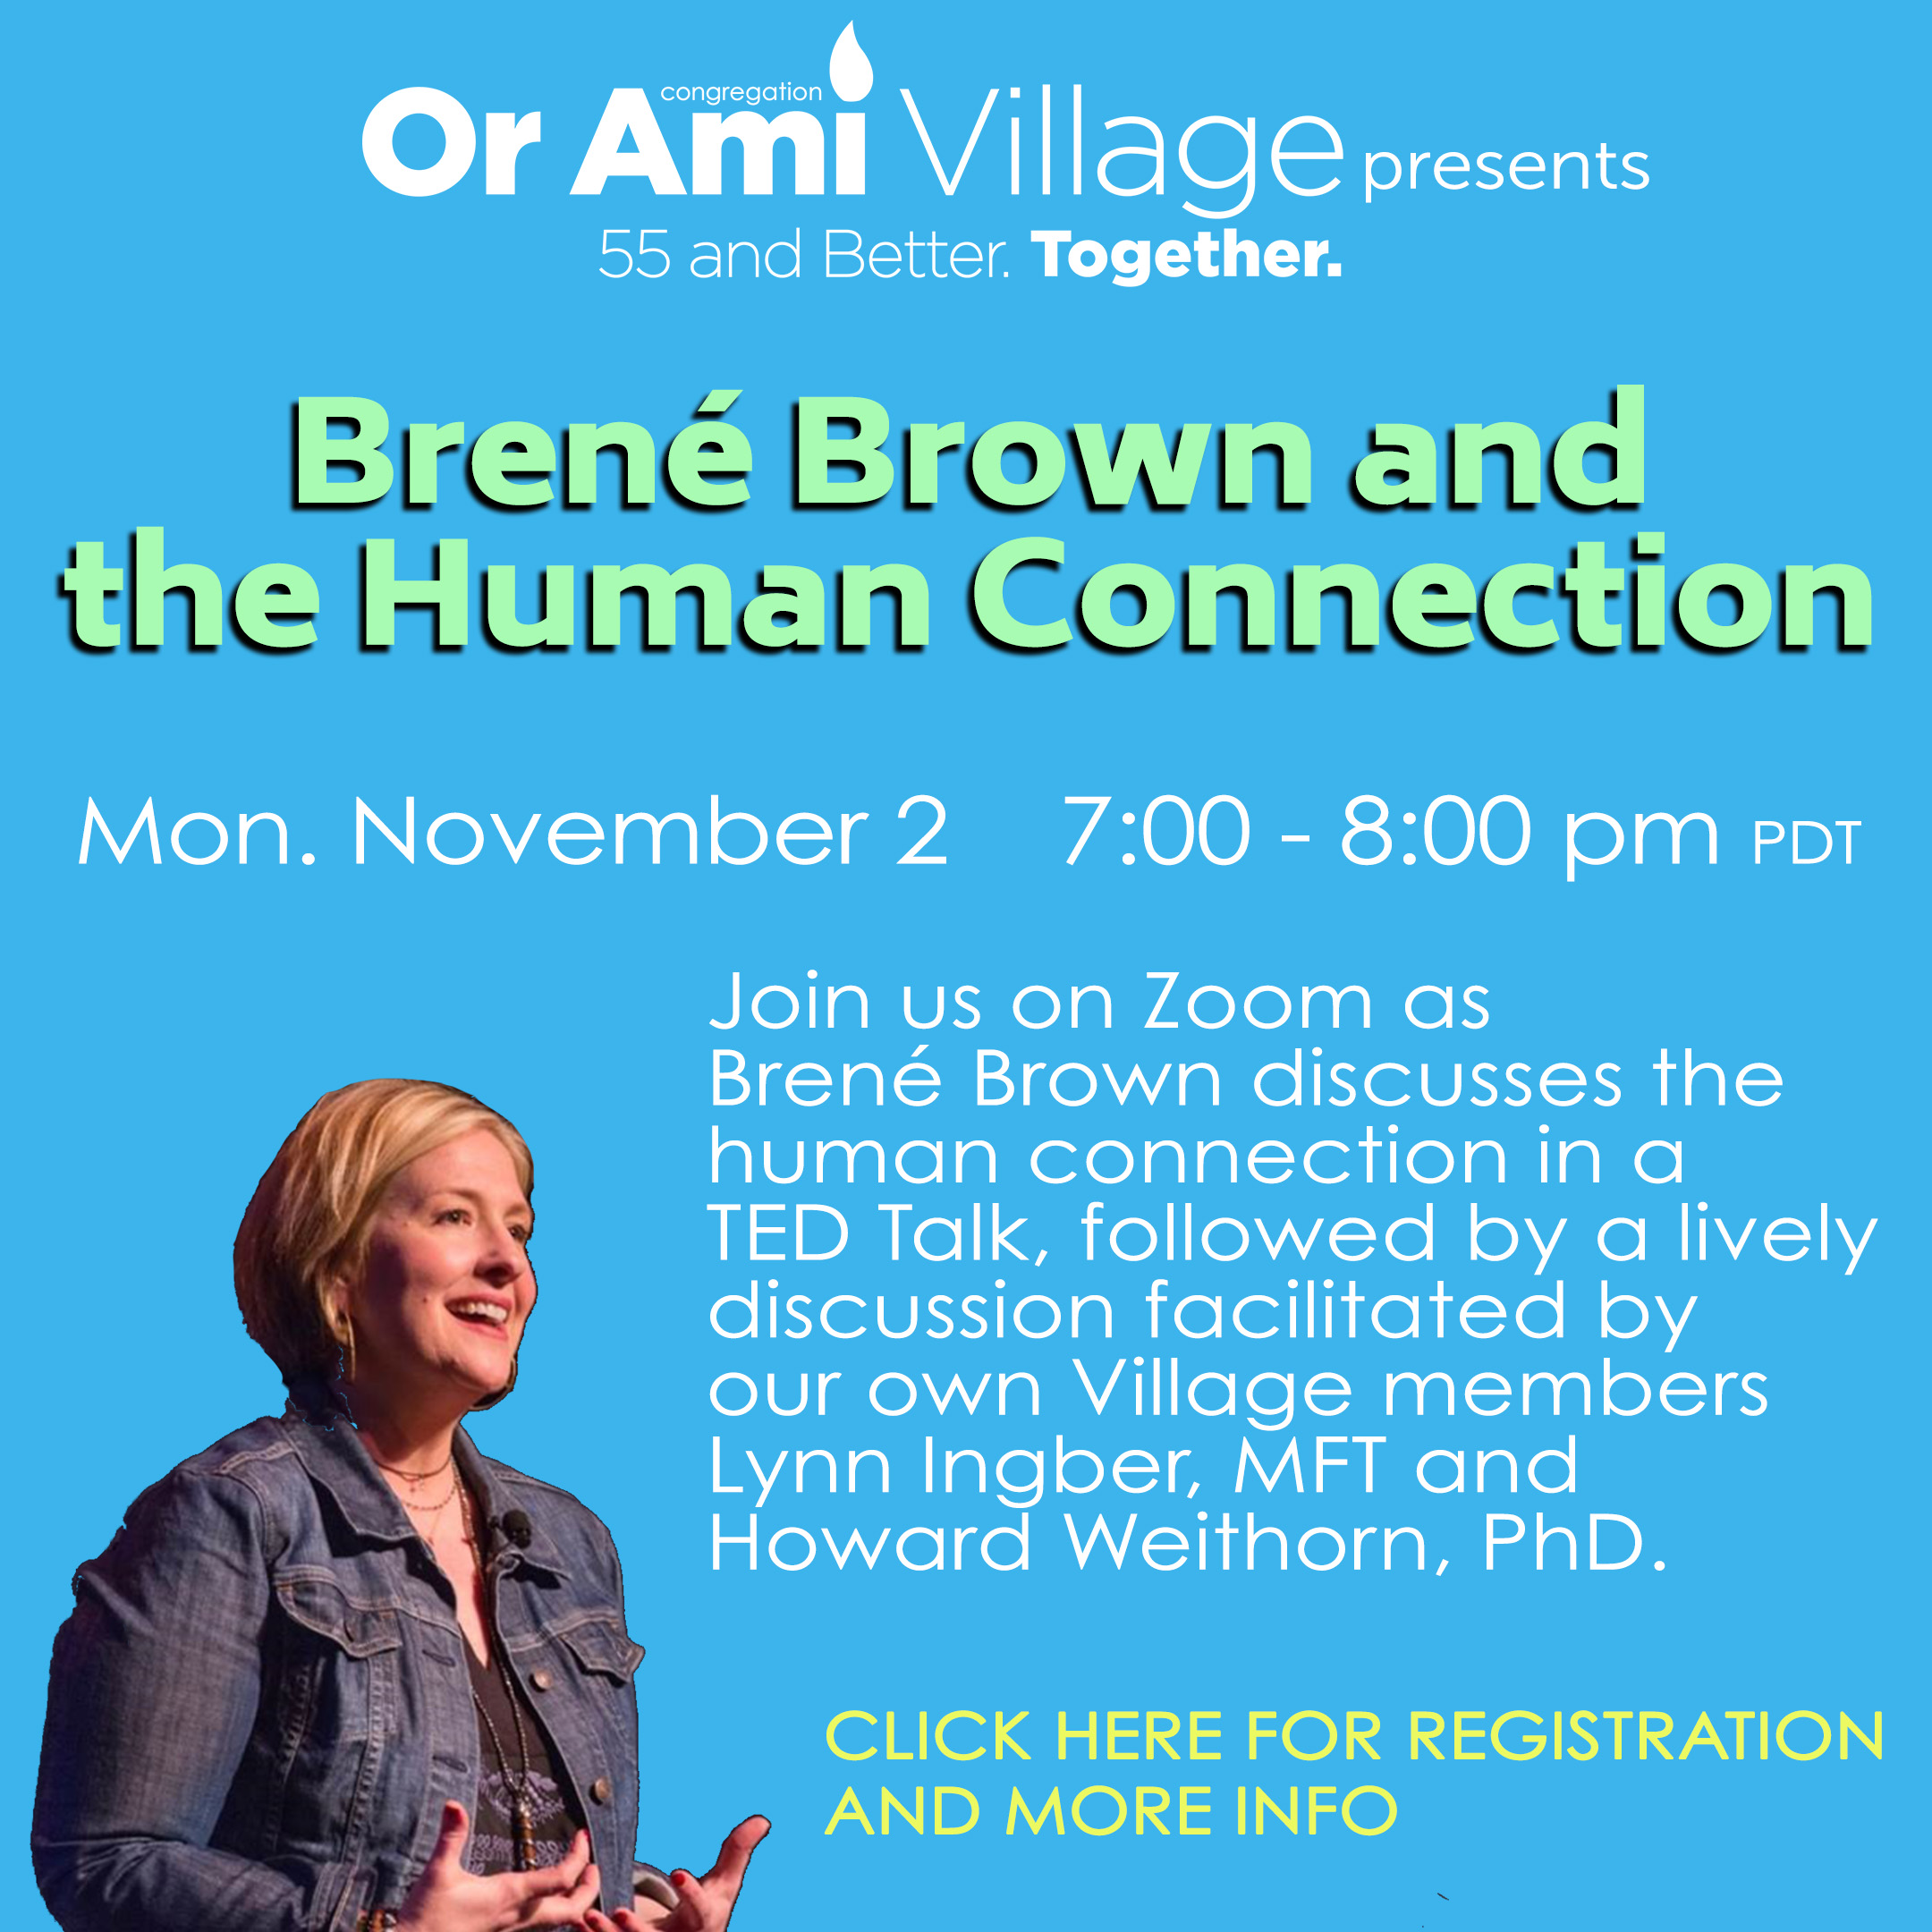 brene brown village with click